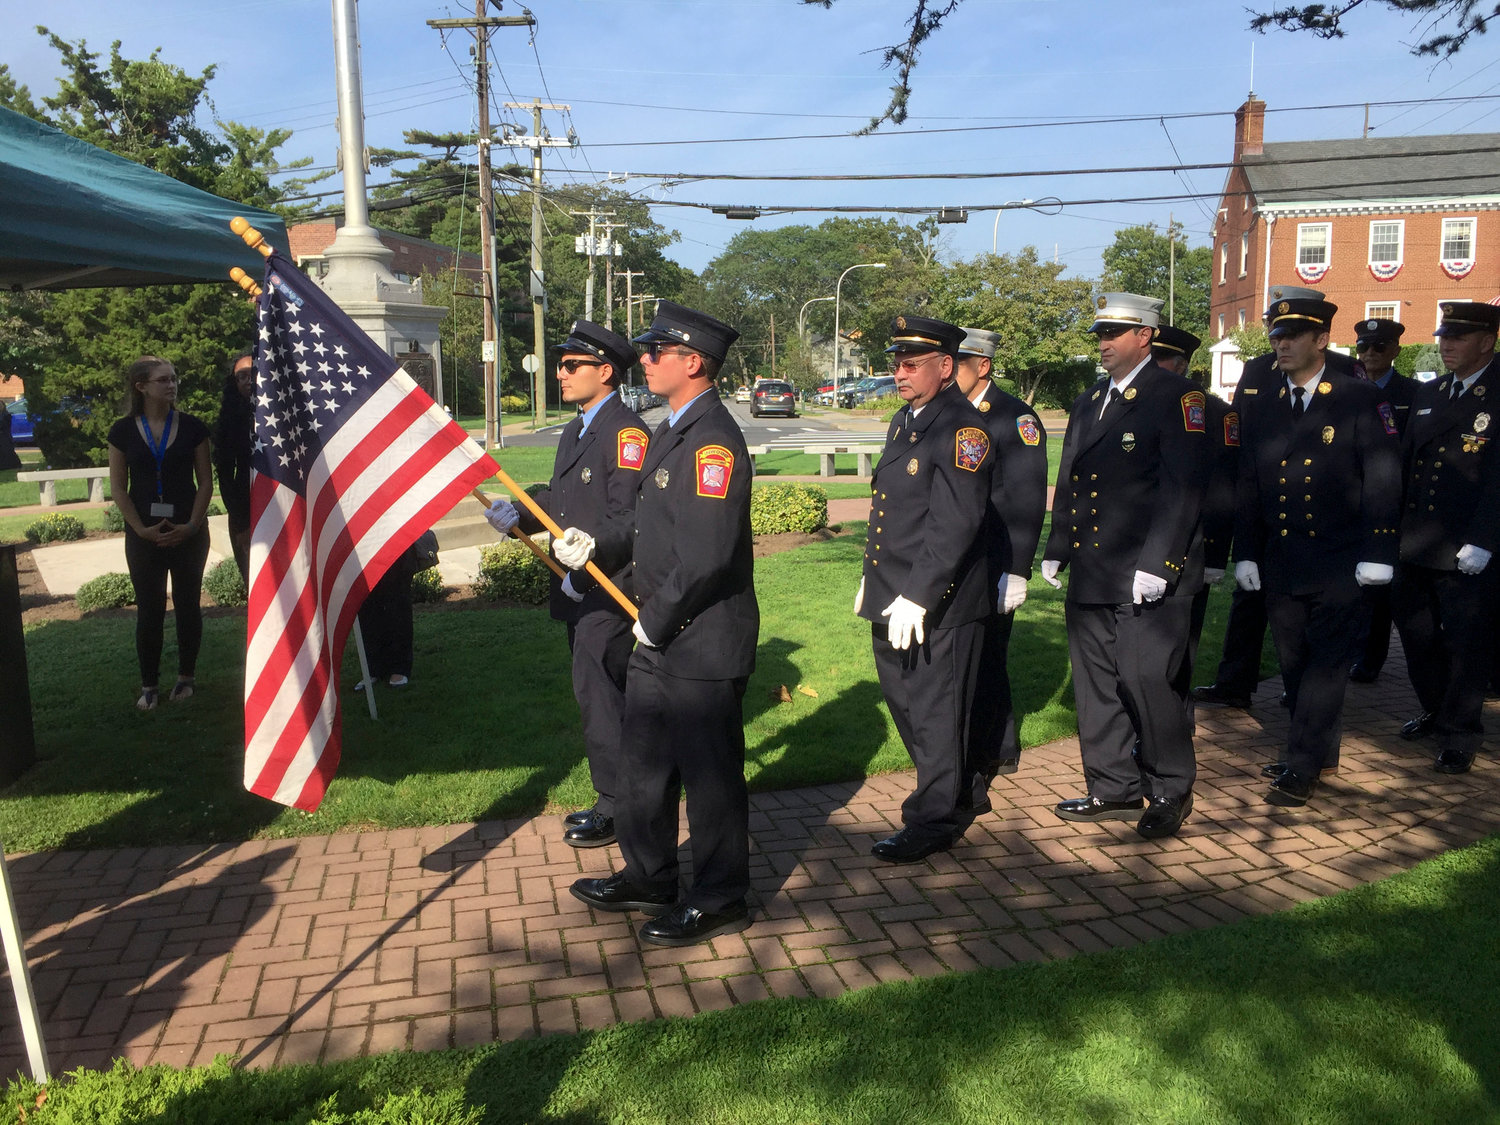 Lawrence-Cedarhurst Fire Department members presented the colors of the flag at the 9/11 remembrance ceremony on Sept. 11.